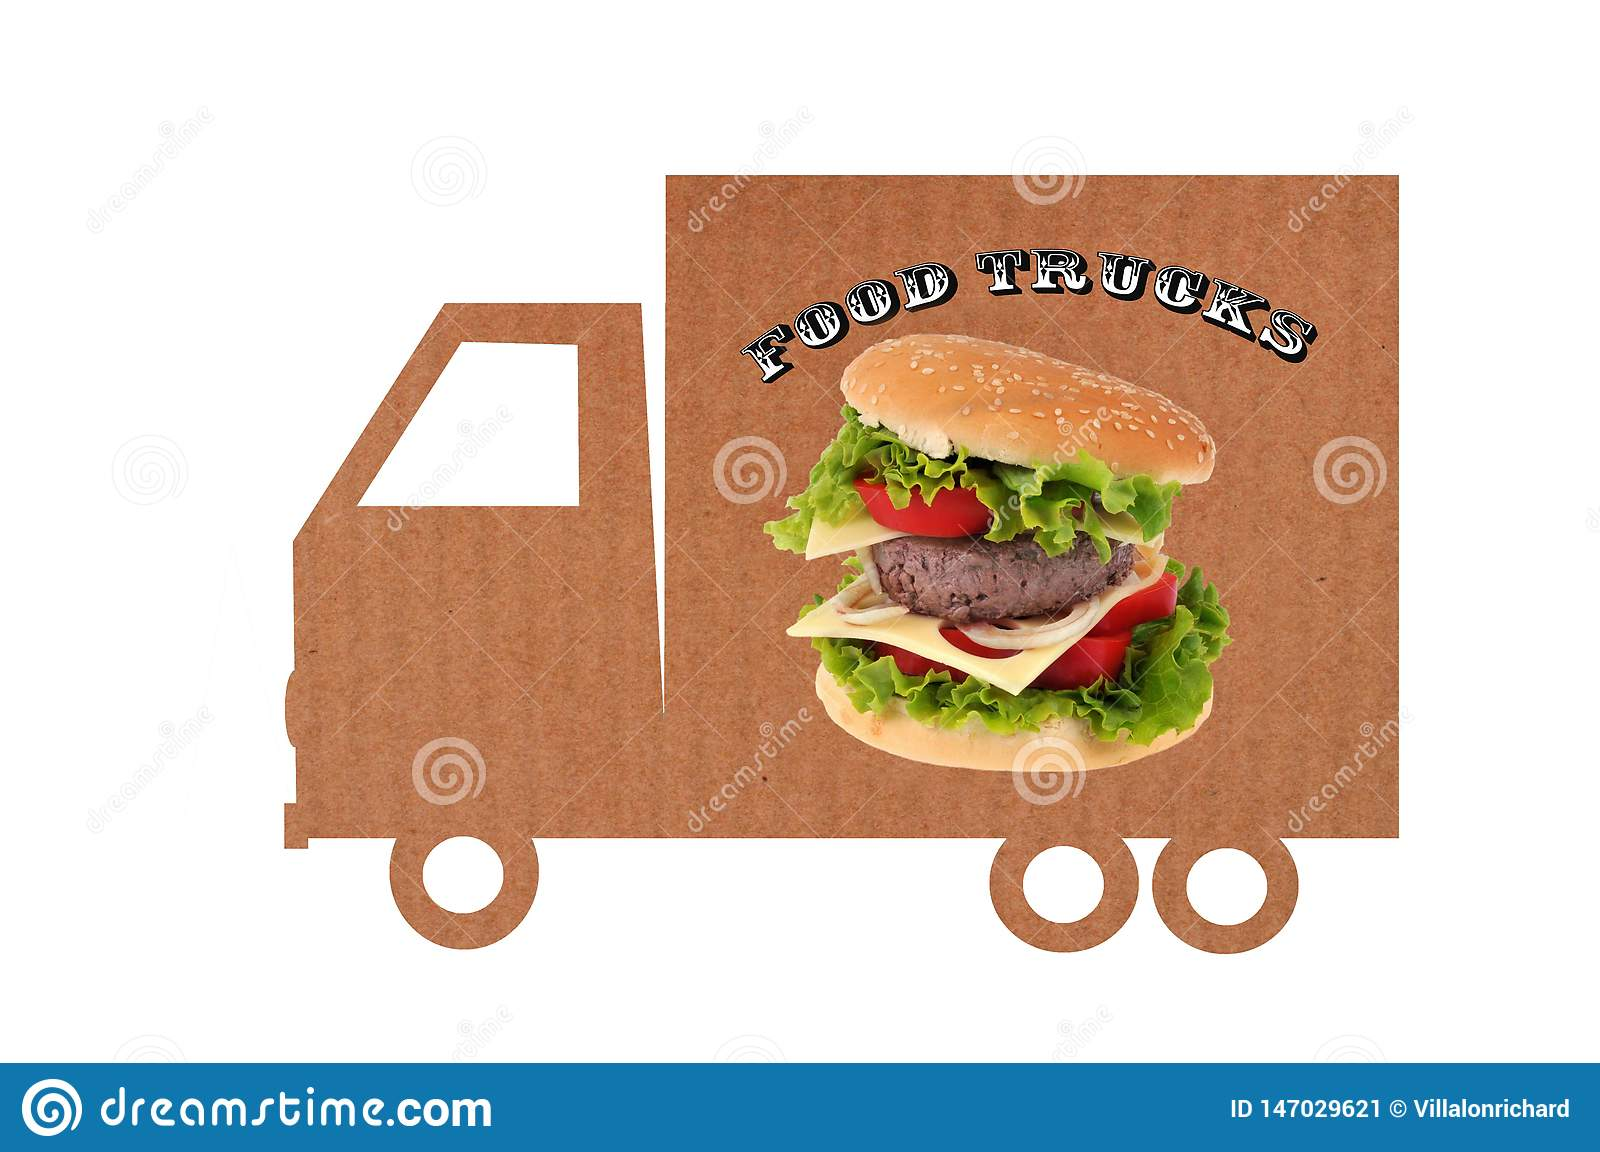 Cardboard food truck concept on white background